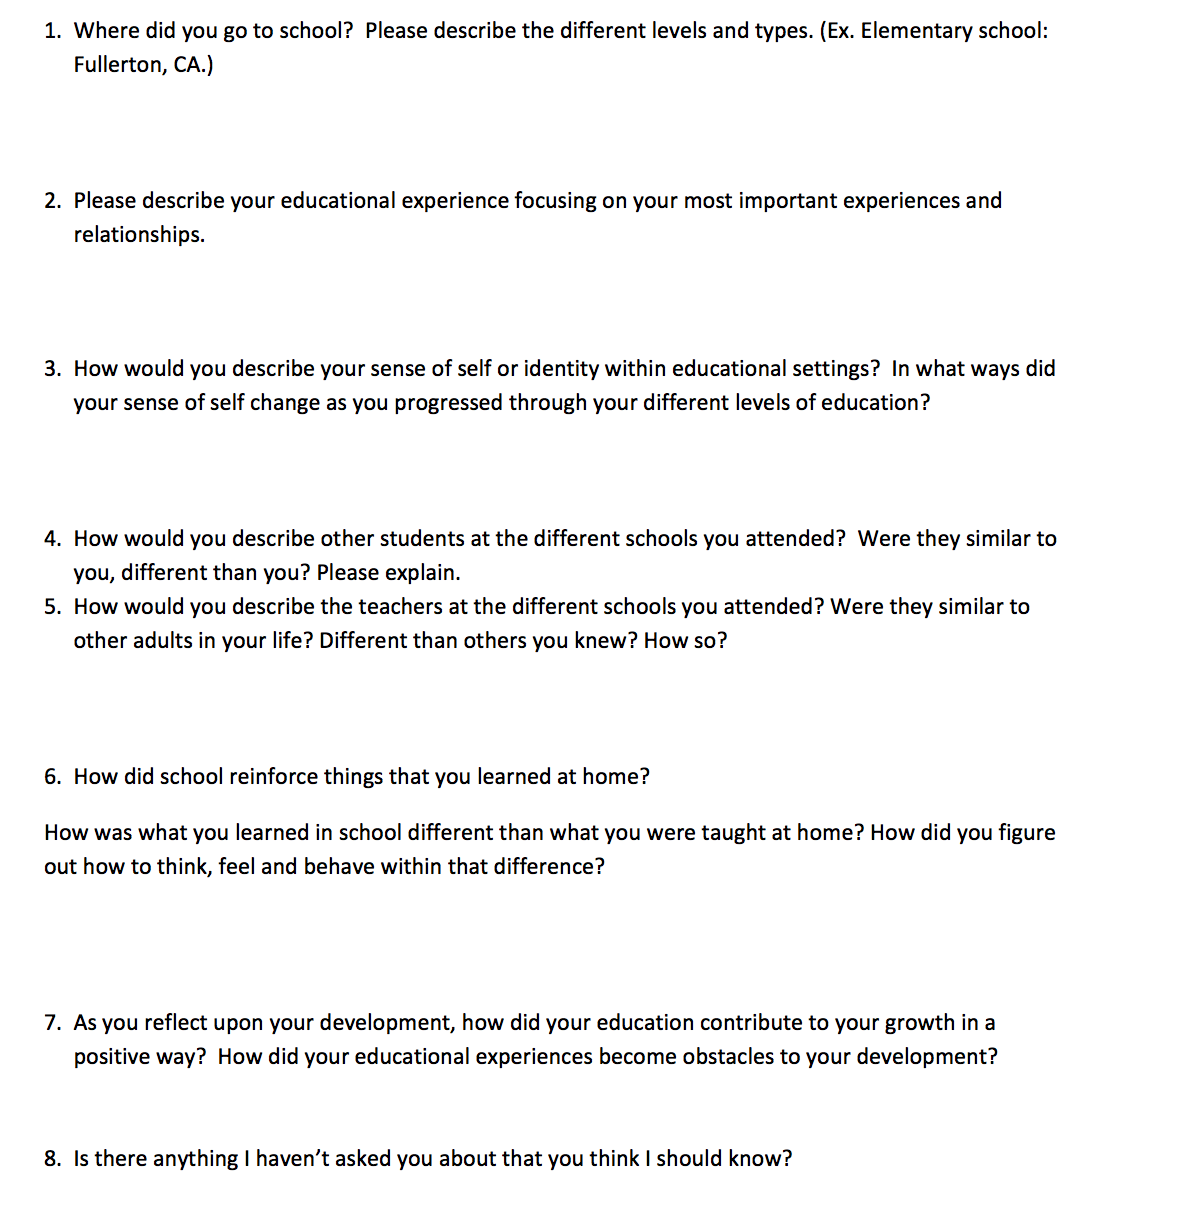 self assessment - Describe Your Educational Experience